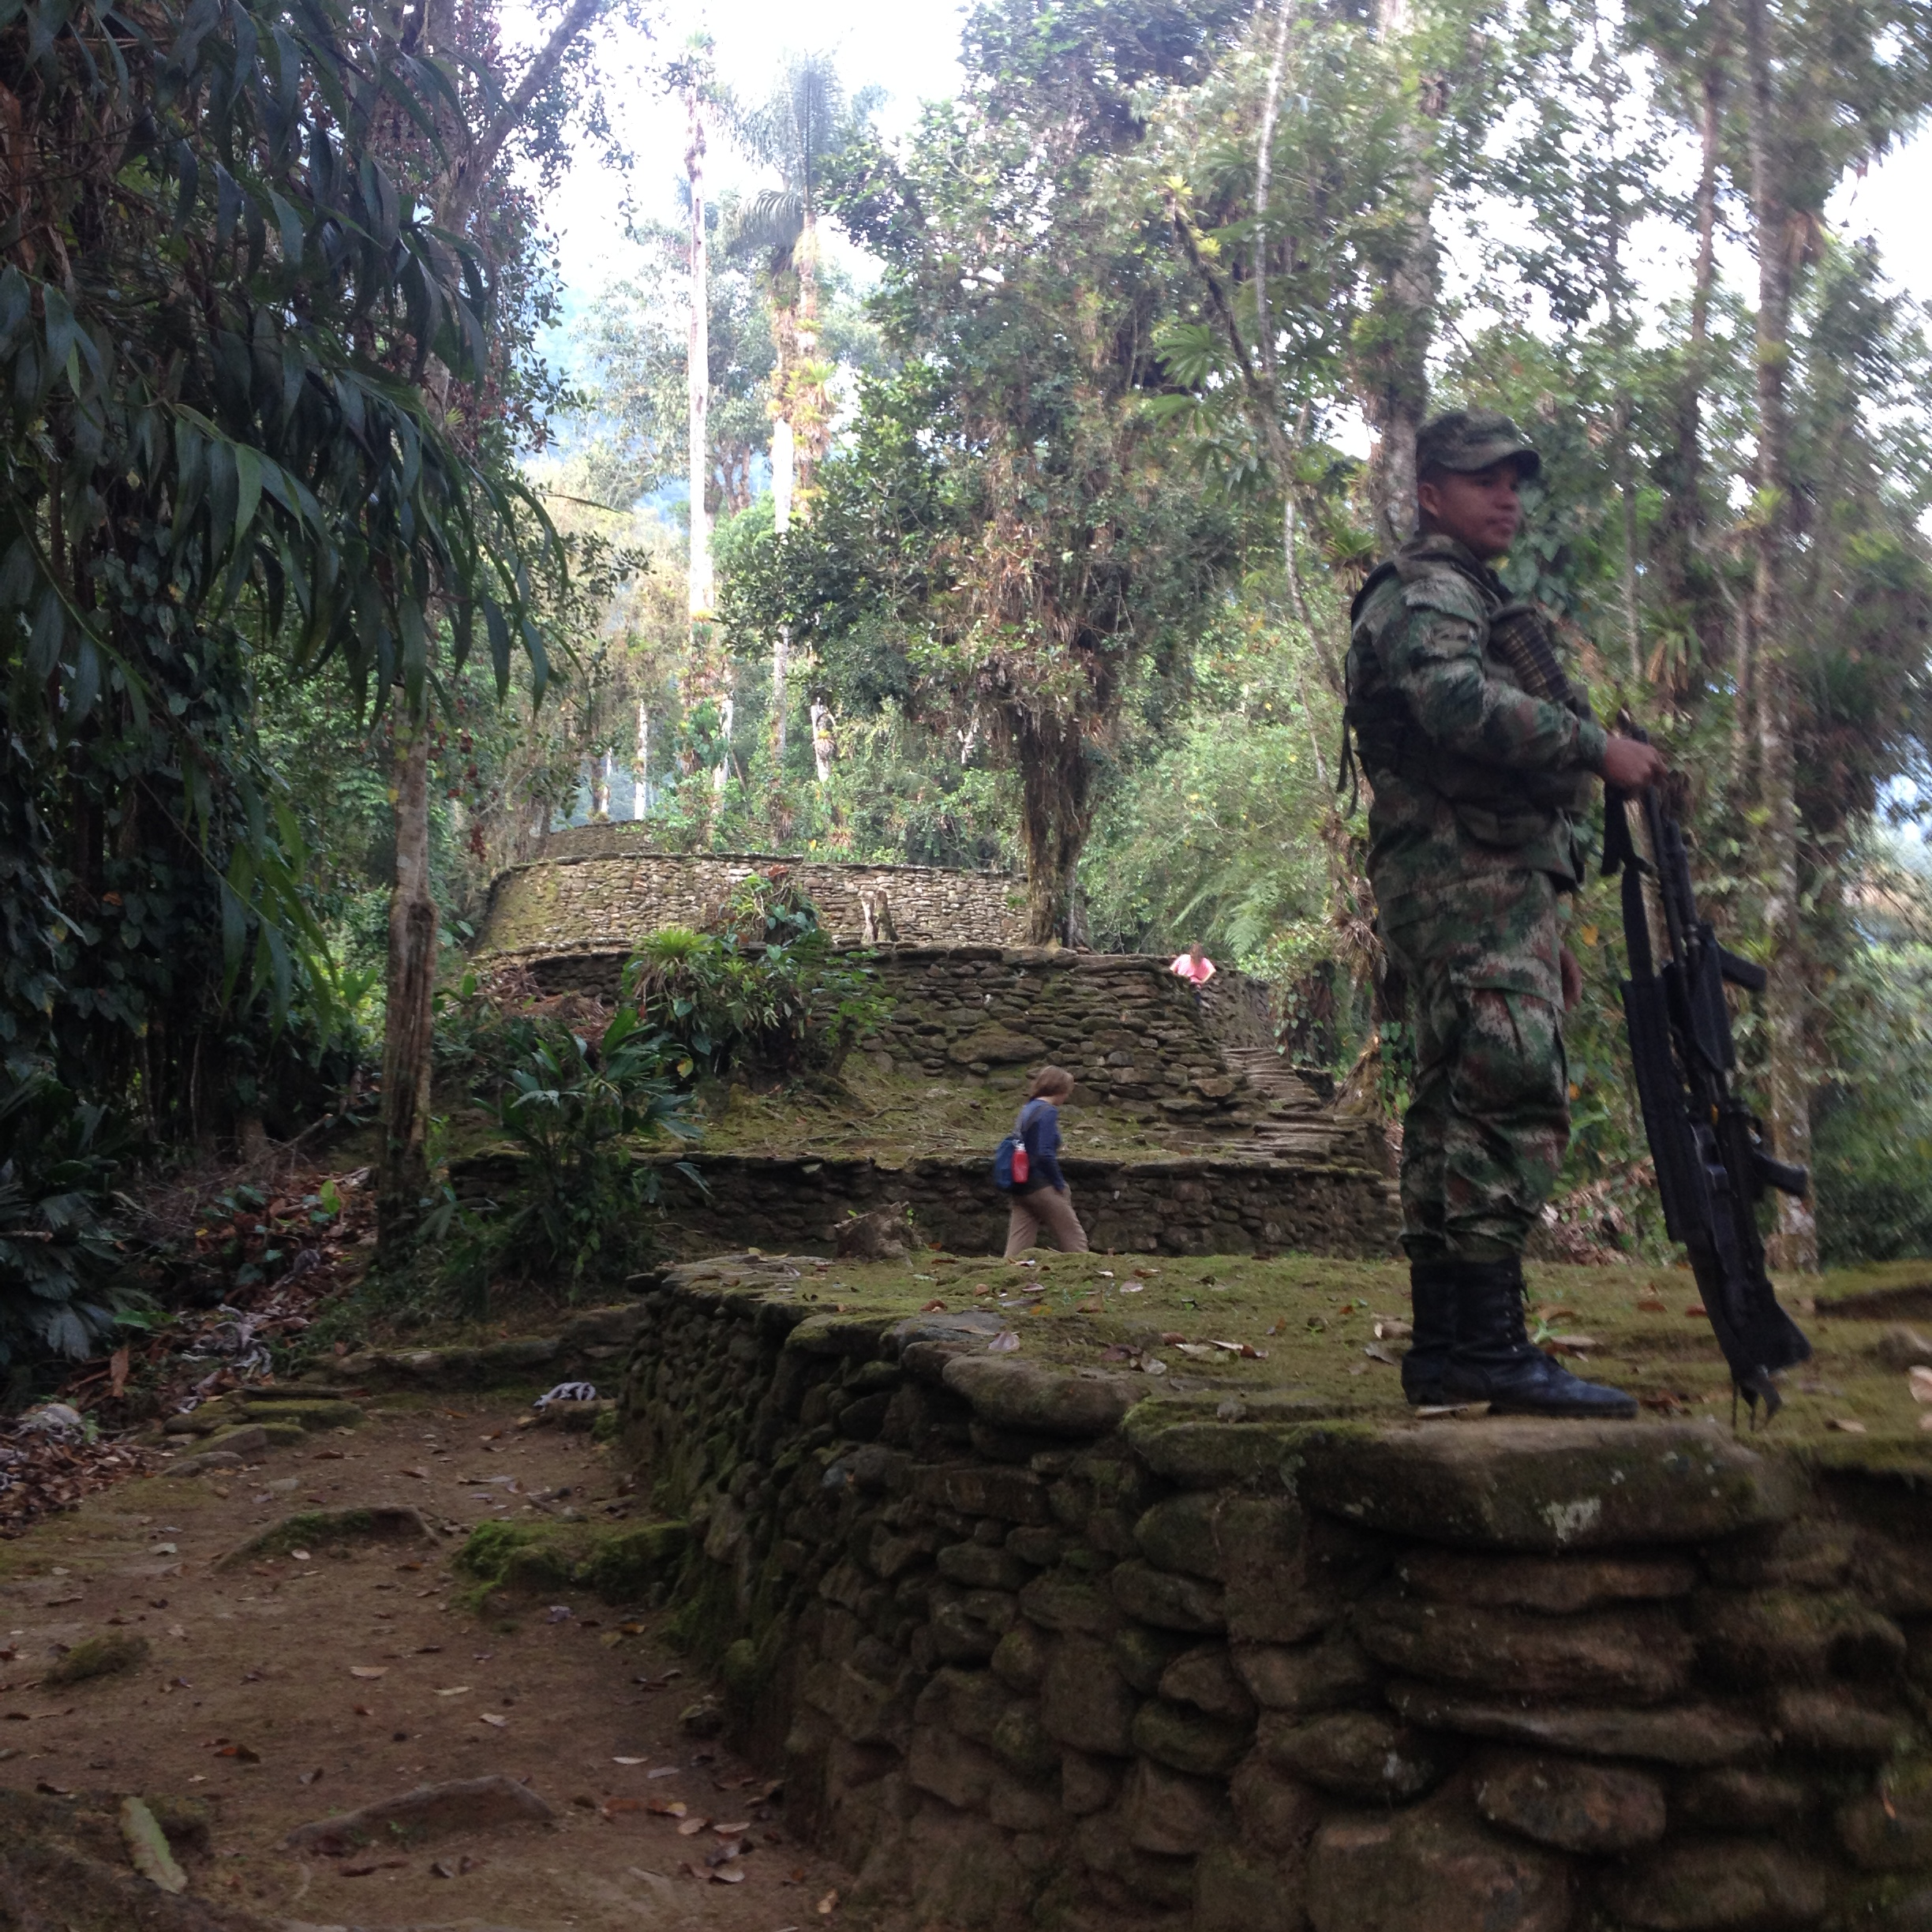 Military guard the Lost City